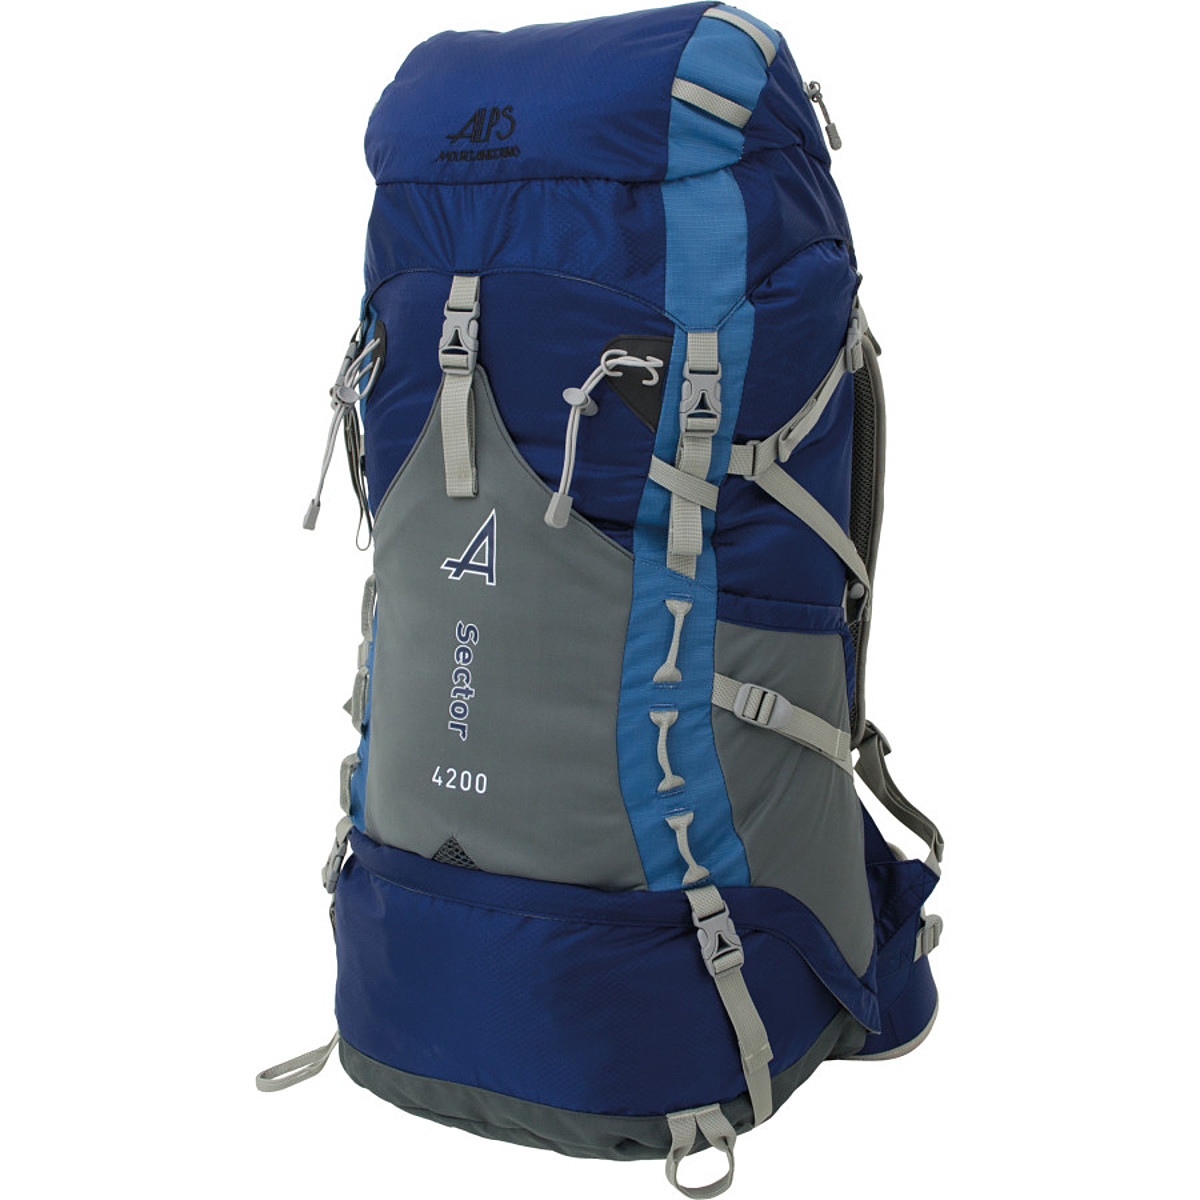 photo: ALPS Mountaineering Sector 4200 weekend pack (3,000 - 4,499 cu in)